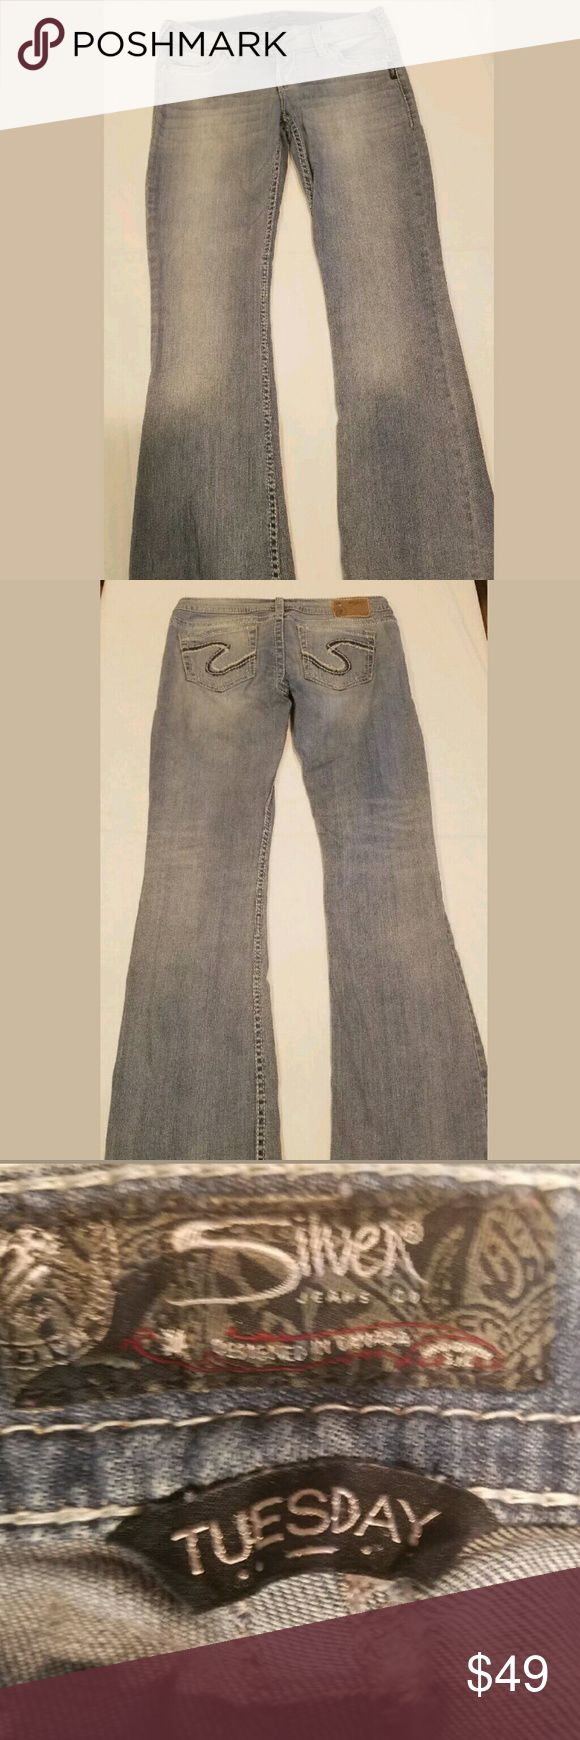 Silver Jeans Tuesday 29 X 33 Indigo Denim Silver Jeans Tuesday 29 X 33 Women's Indigo Denim  Gently used no rips or stains  smoke free pet free home ships next day silver Jeans Boot Cut